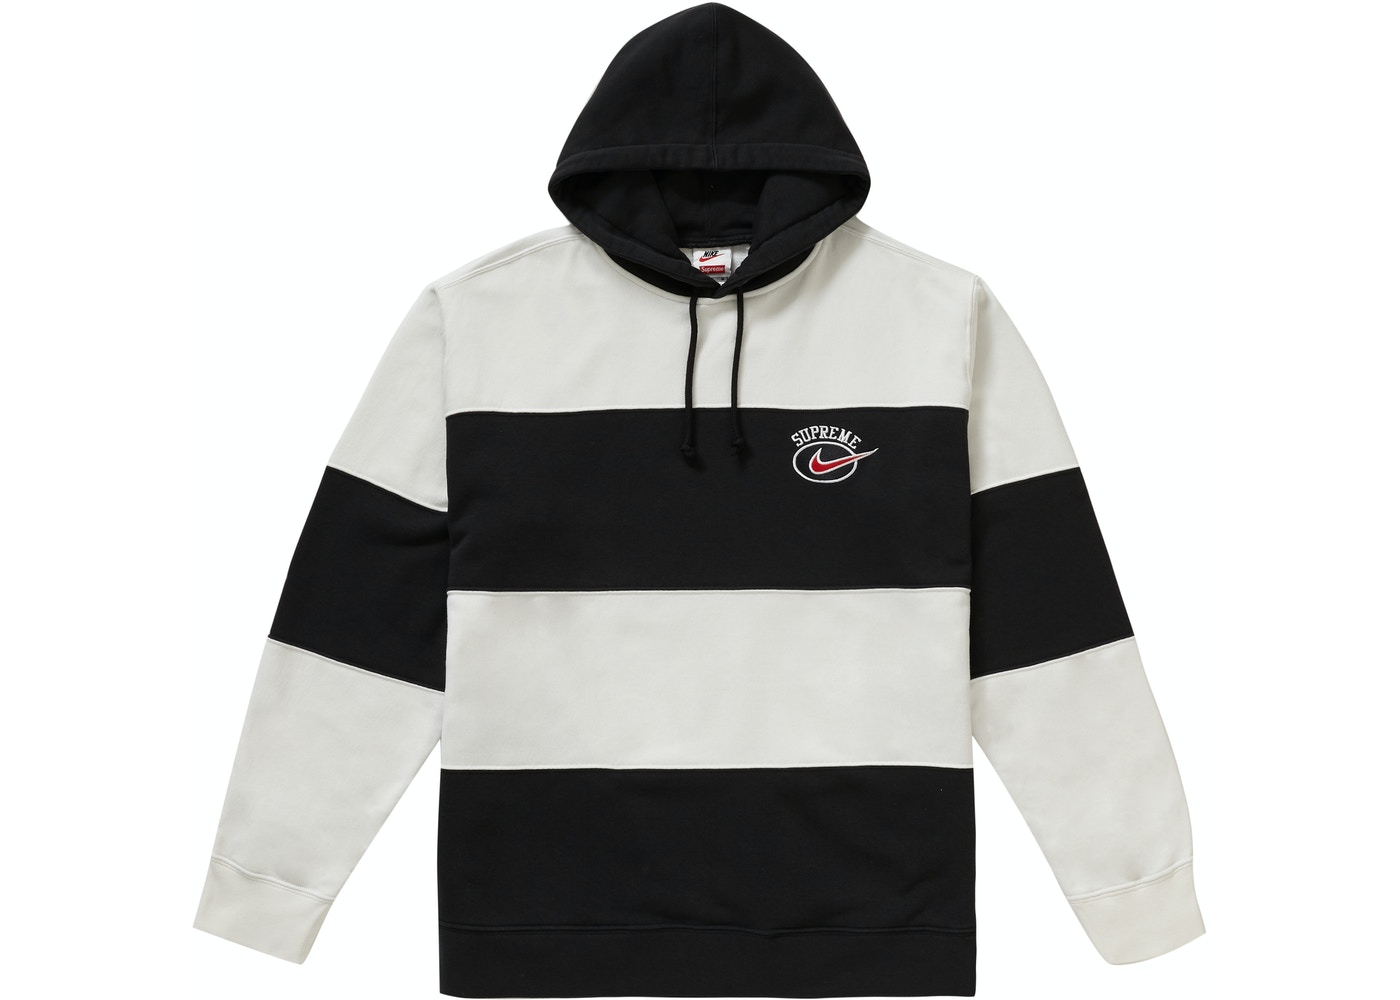 huge discount 8409d 9be01 Supreme Nike Stripe Hooded Sweatshirt Black - SS19